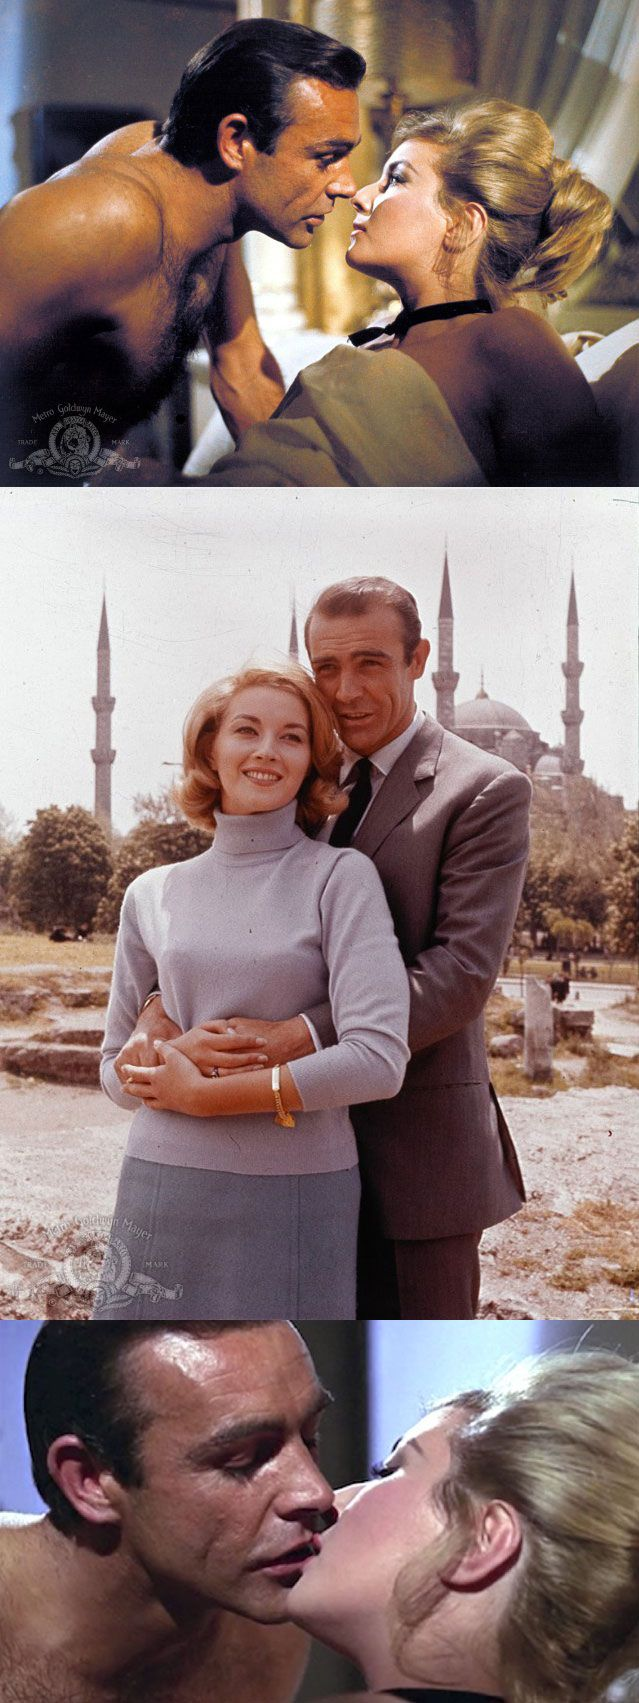 Sean Connery as 'James Bond' & Daniela Bianchi as 'Tatiana Romanova' in From Russia with Love (1963)